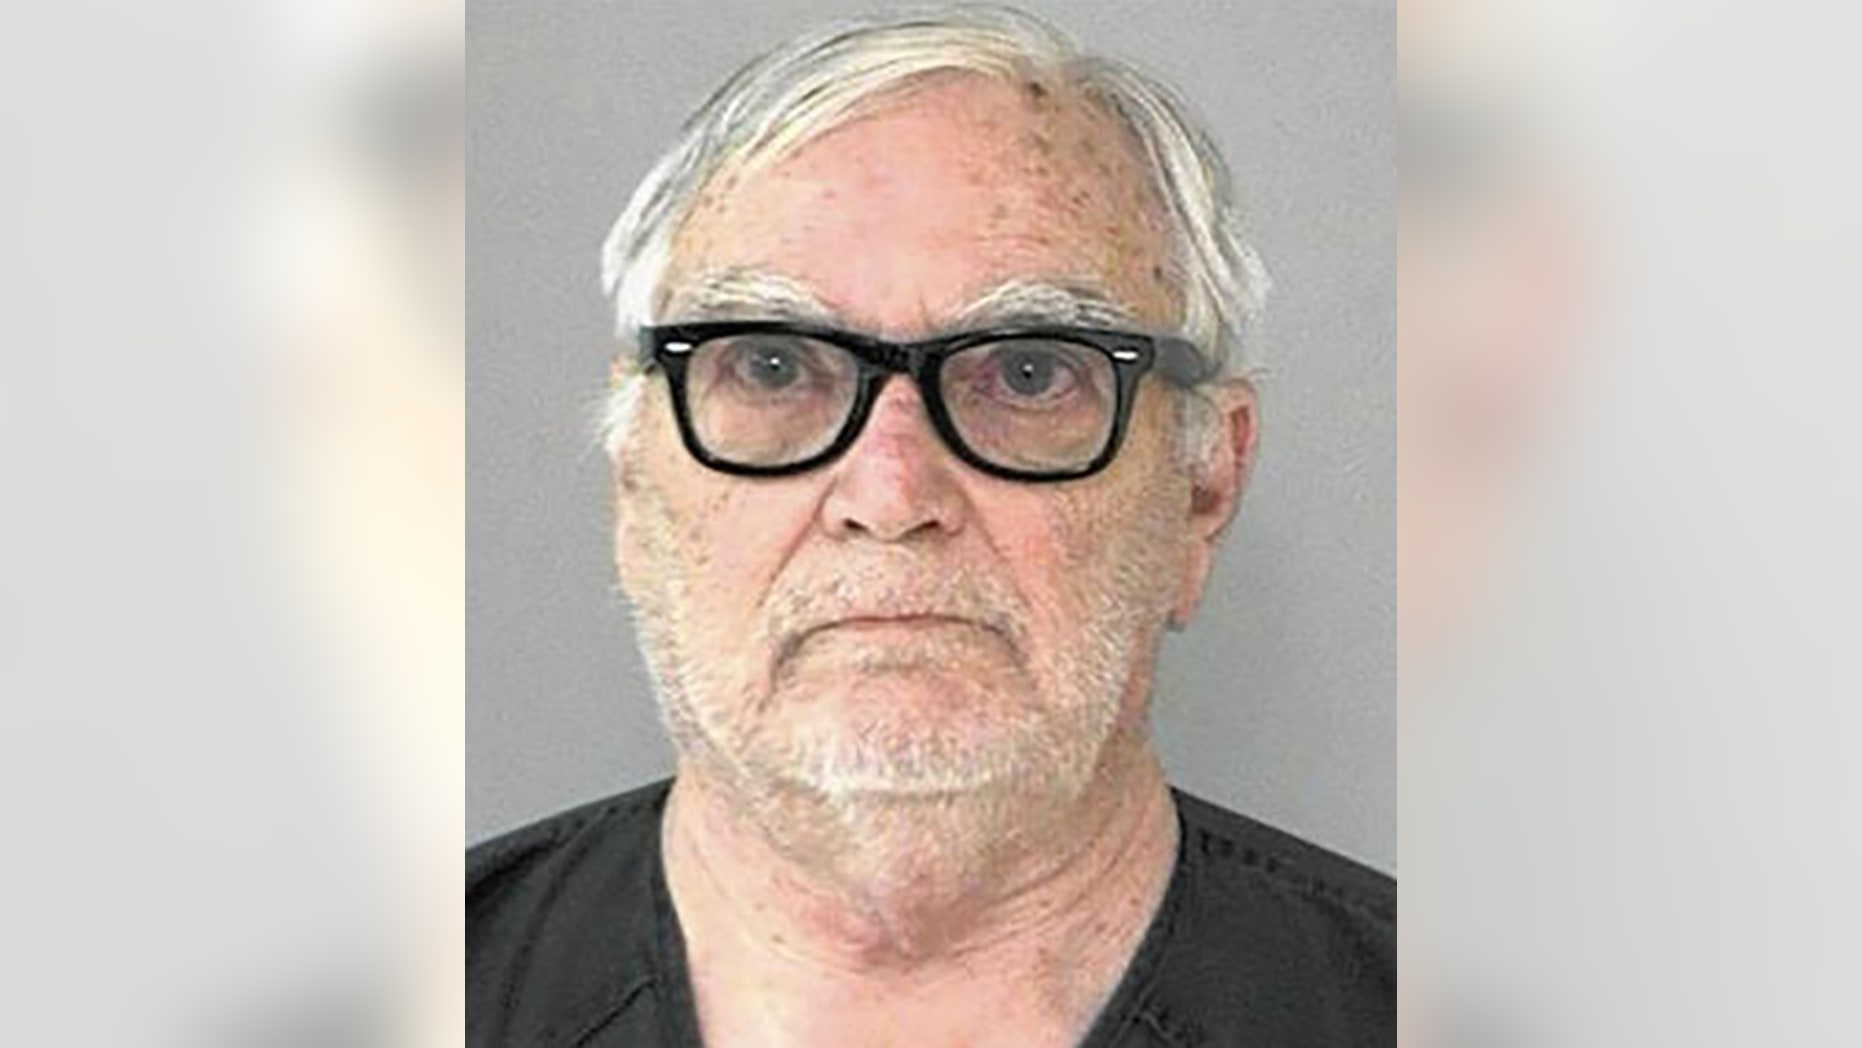 Donnie Rudd claimed his bride was thrown from their car after another driver ran them off a road.